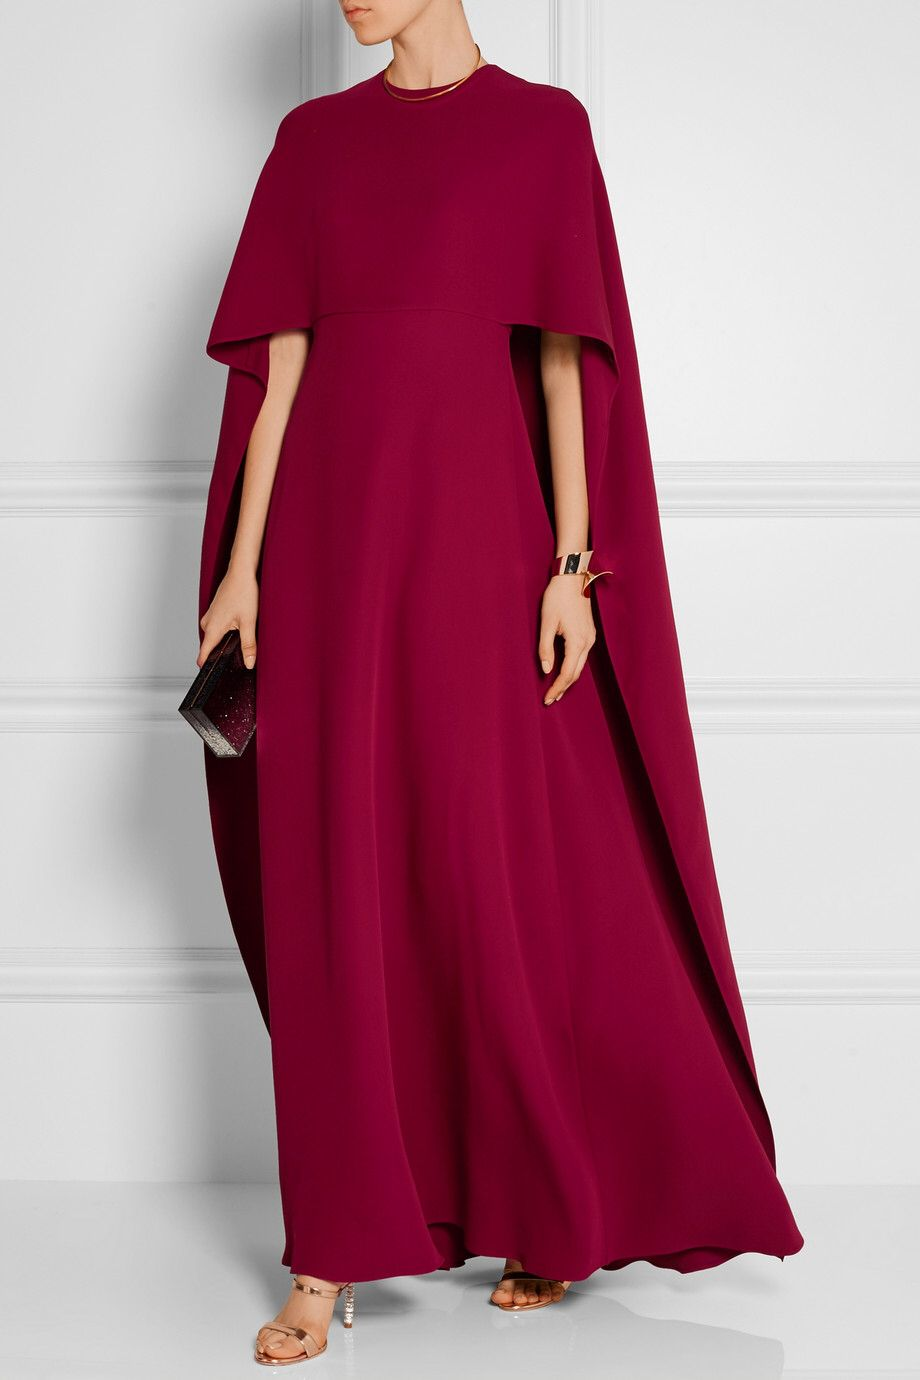 fa9c7ad327ee VALENTINO Cape-back silk-crepe gown  7,690.00   Love that dress ...